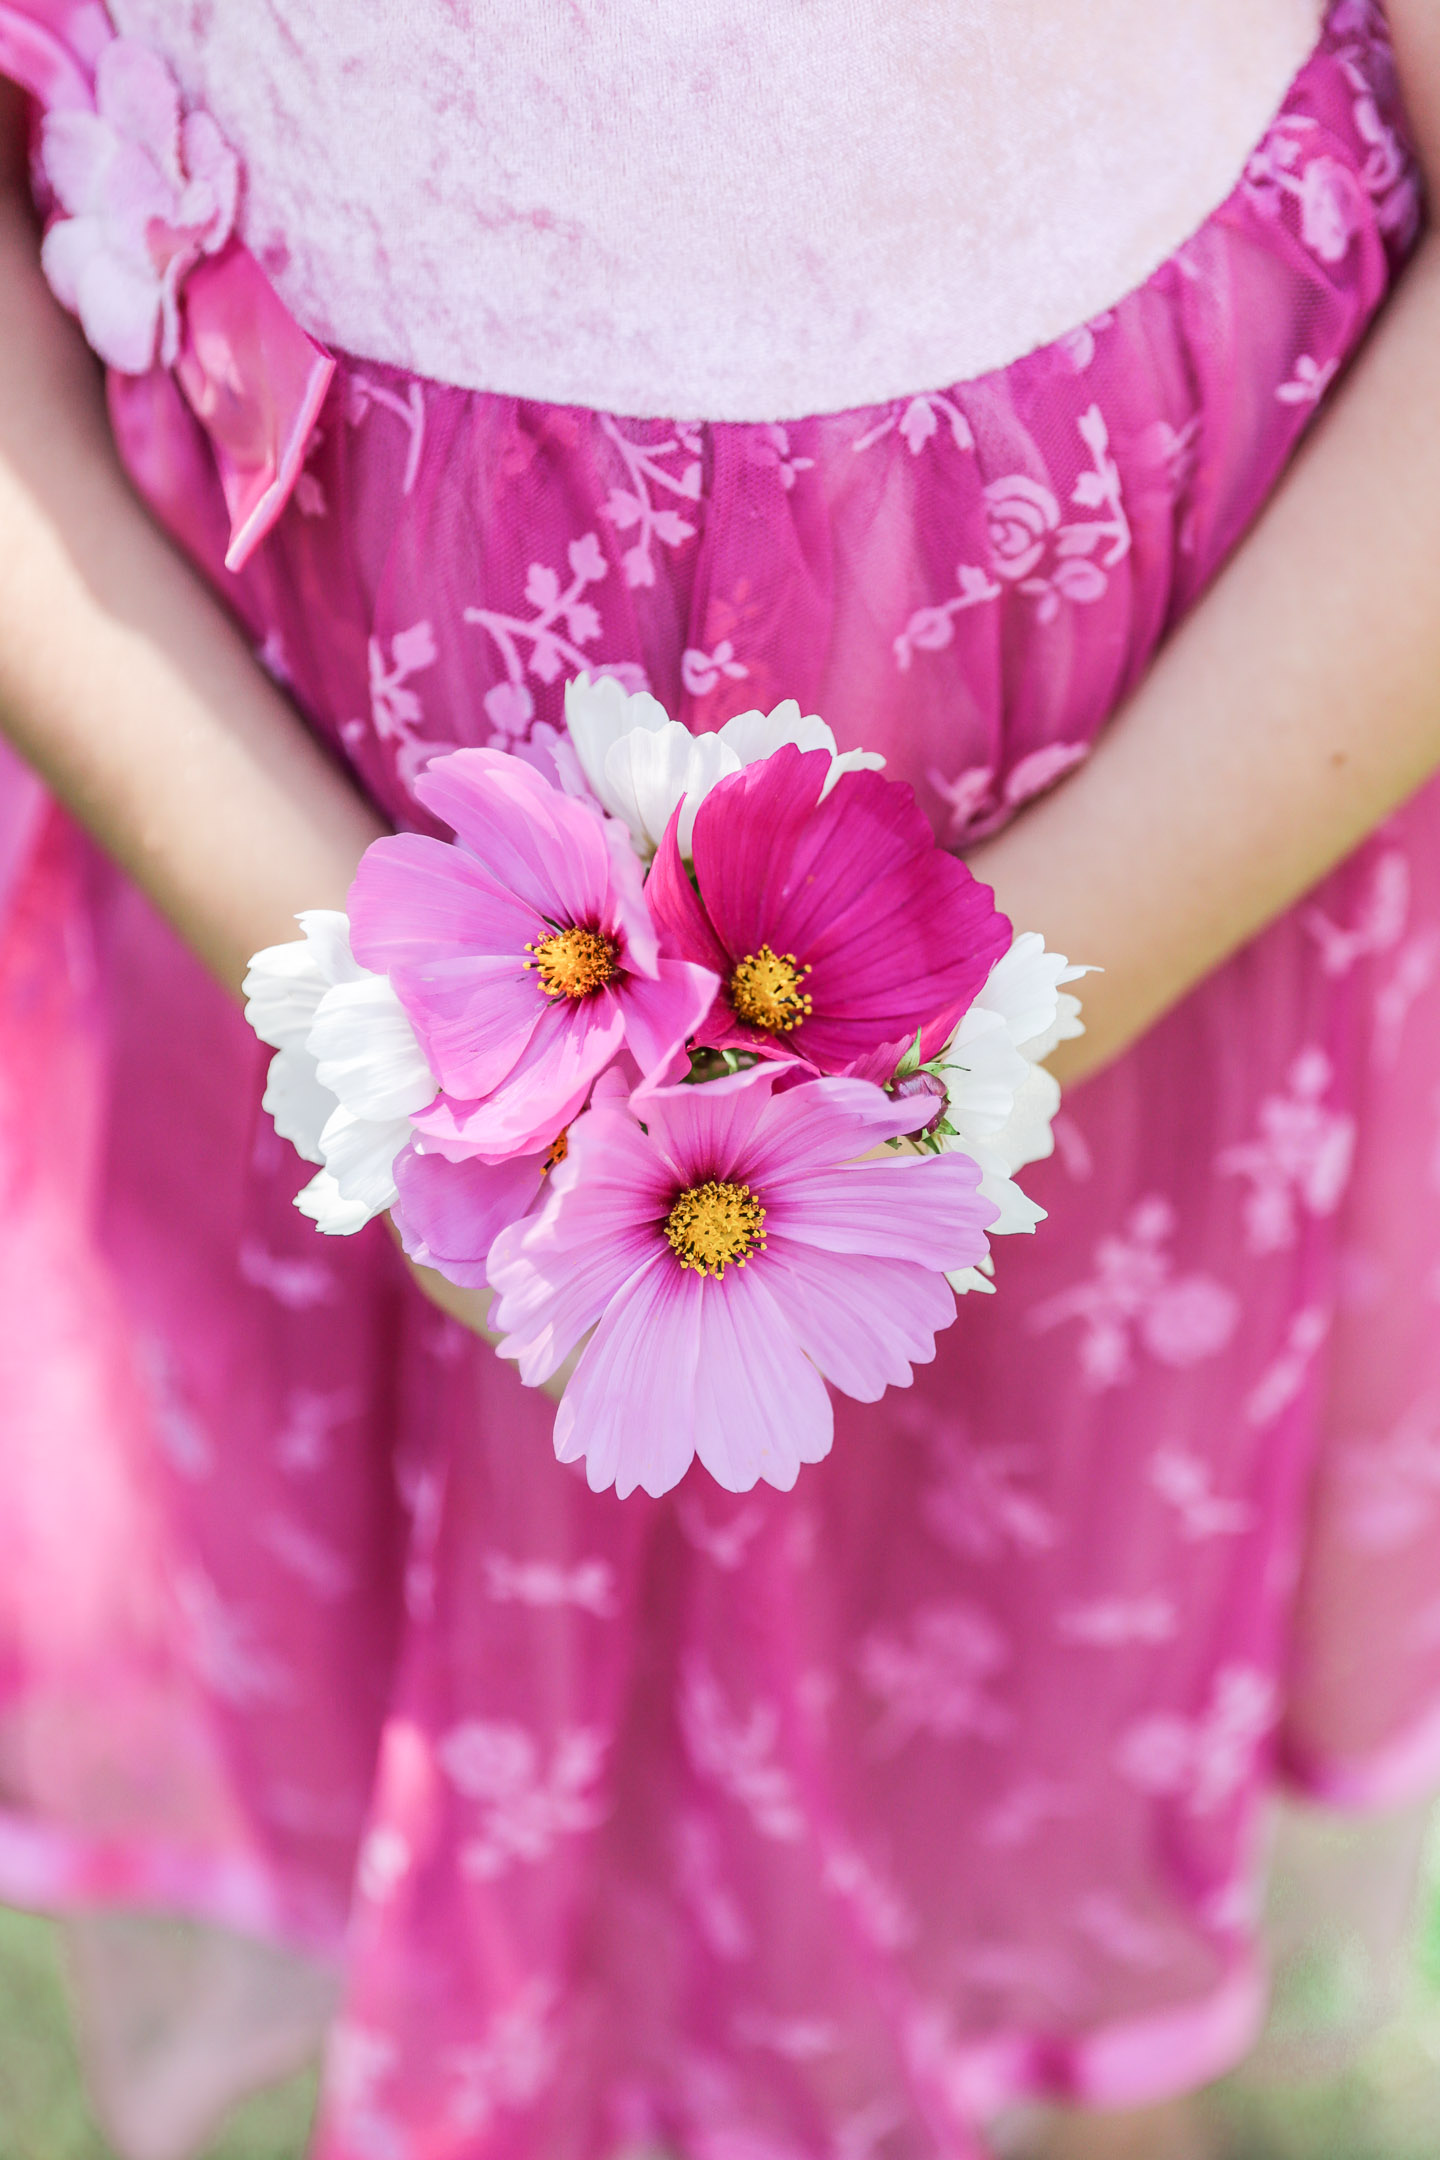 A girl holding a small bouquet of cosmos.